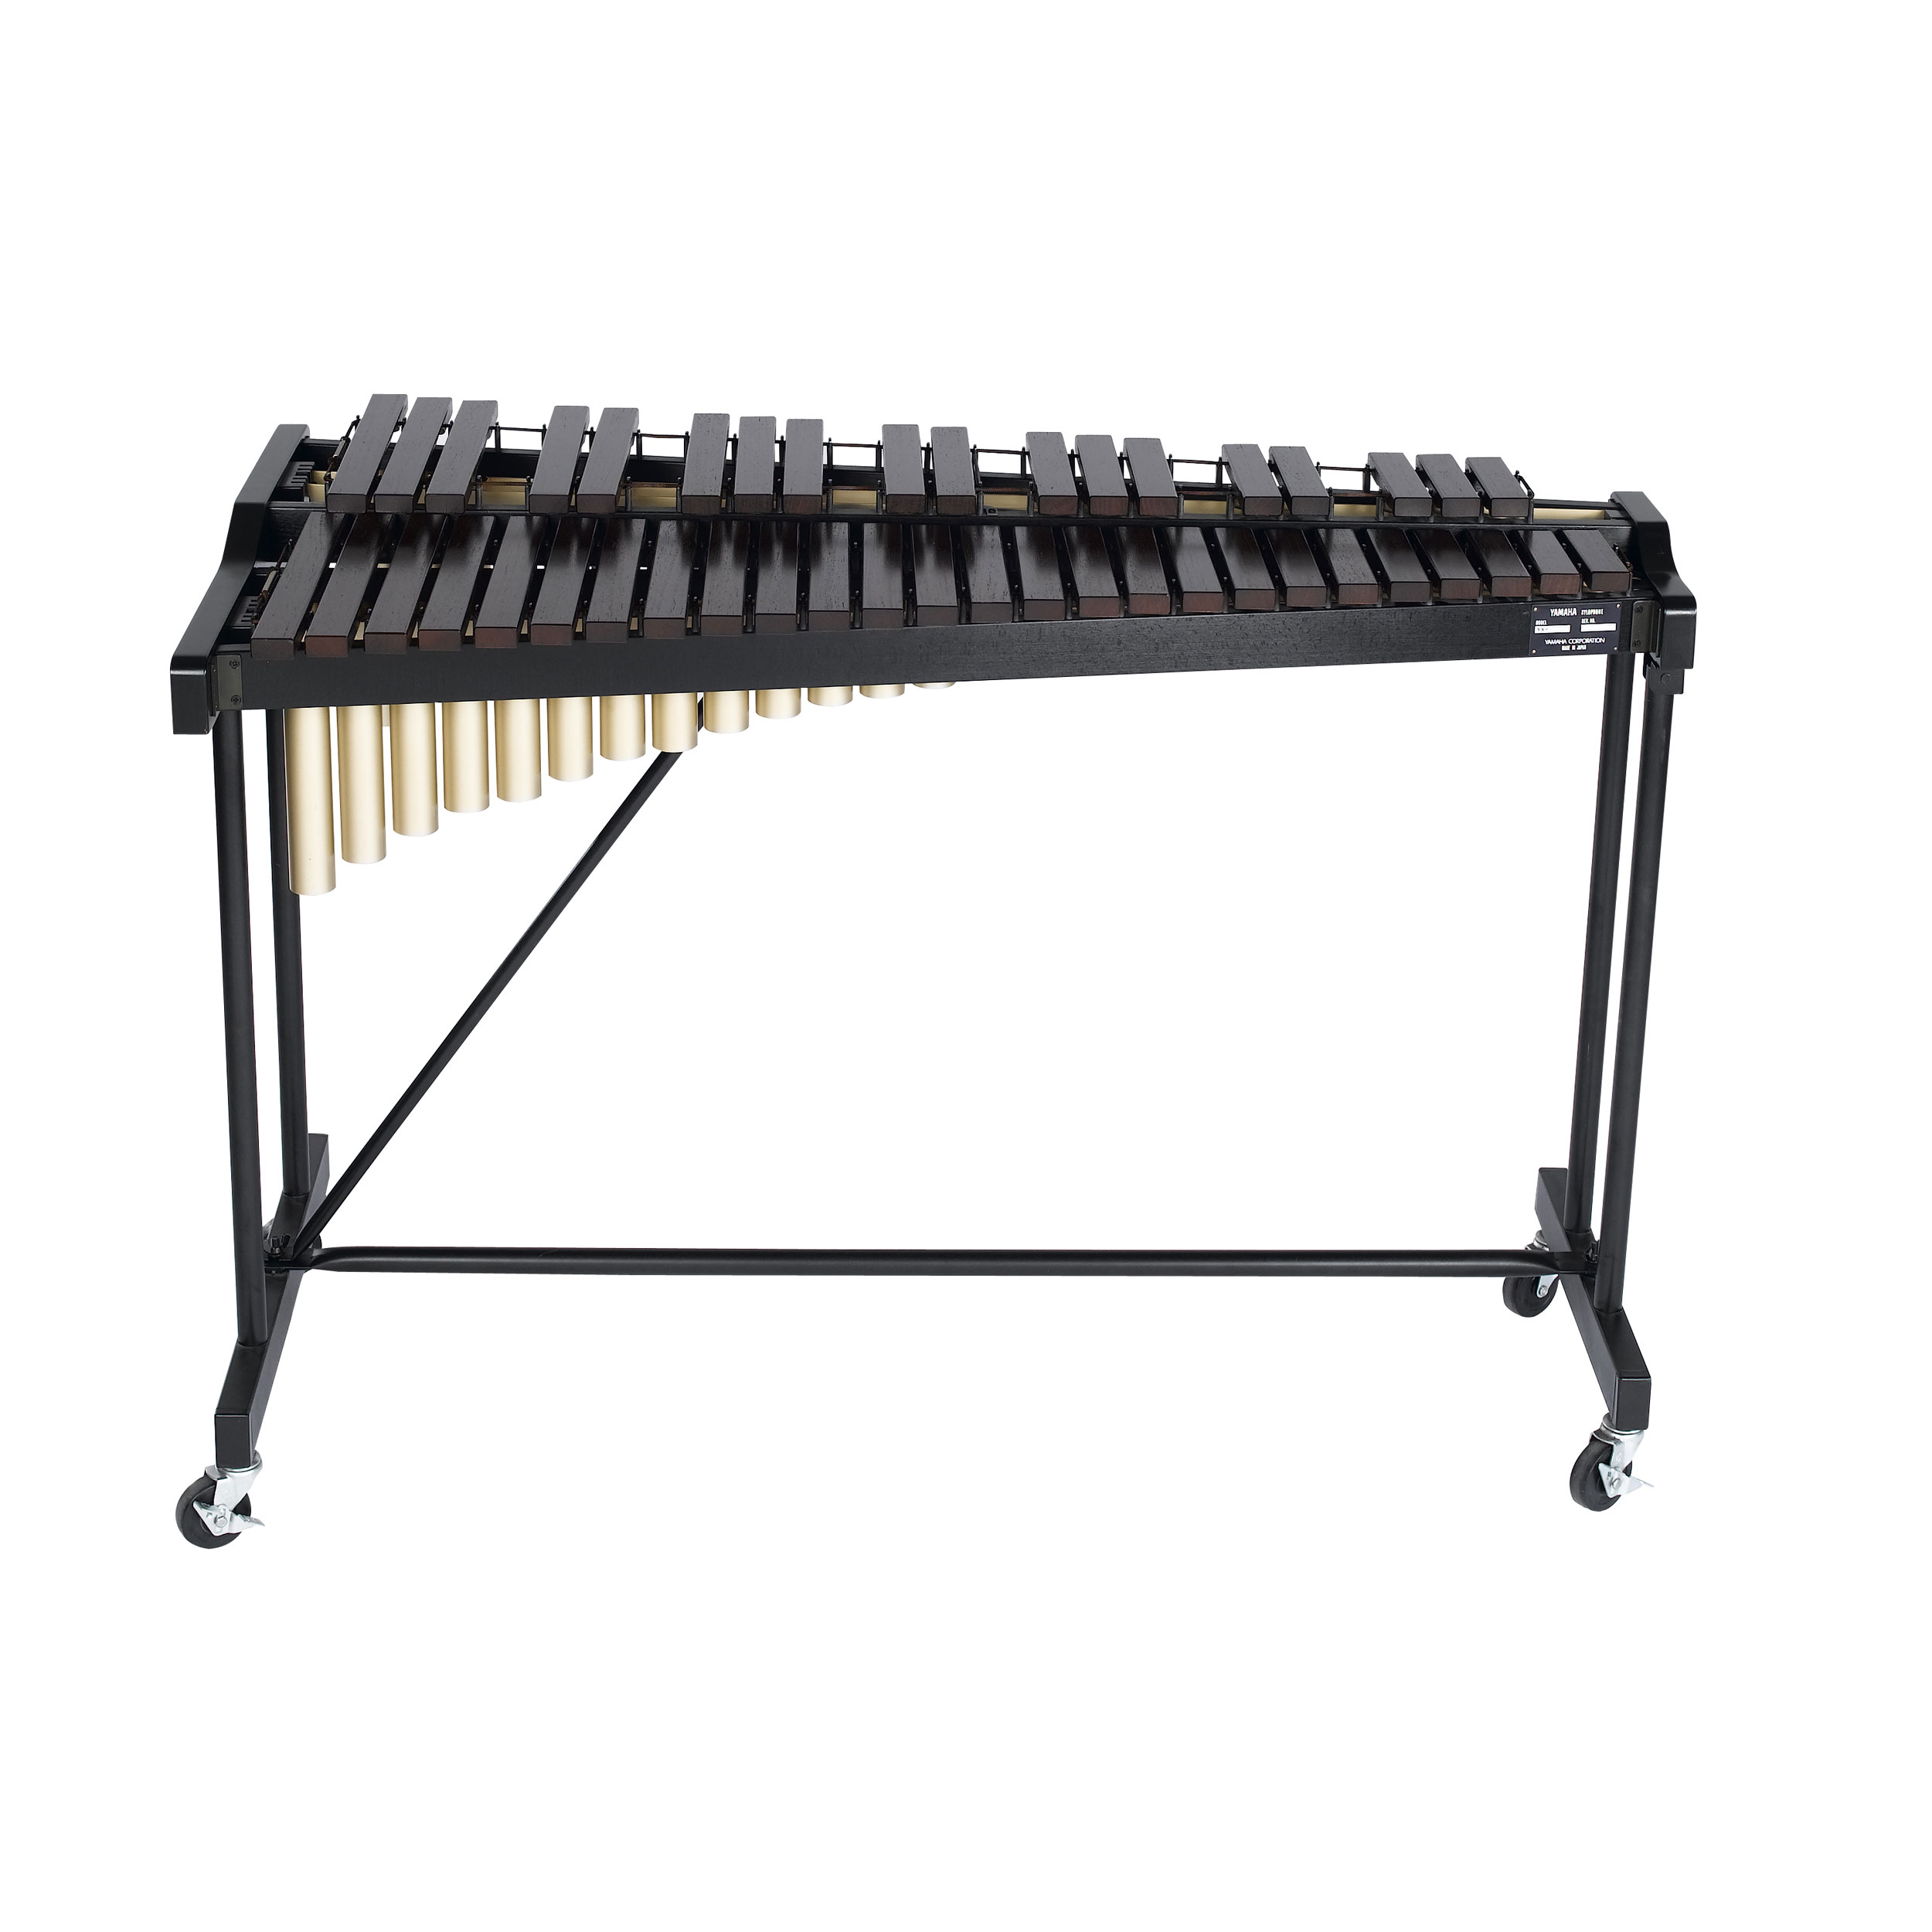 Yamaha 3 5 octave standard padouk xylophone with cover yx135c for Yamaha 3 octave keyboard